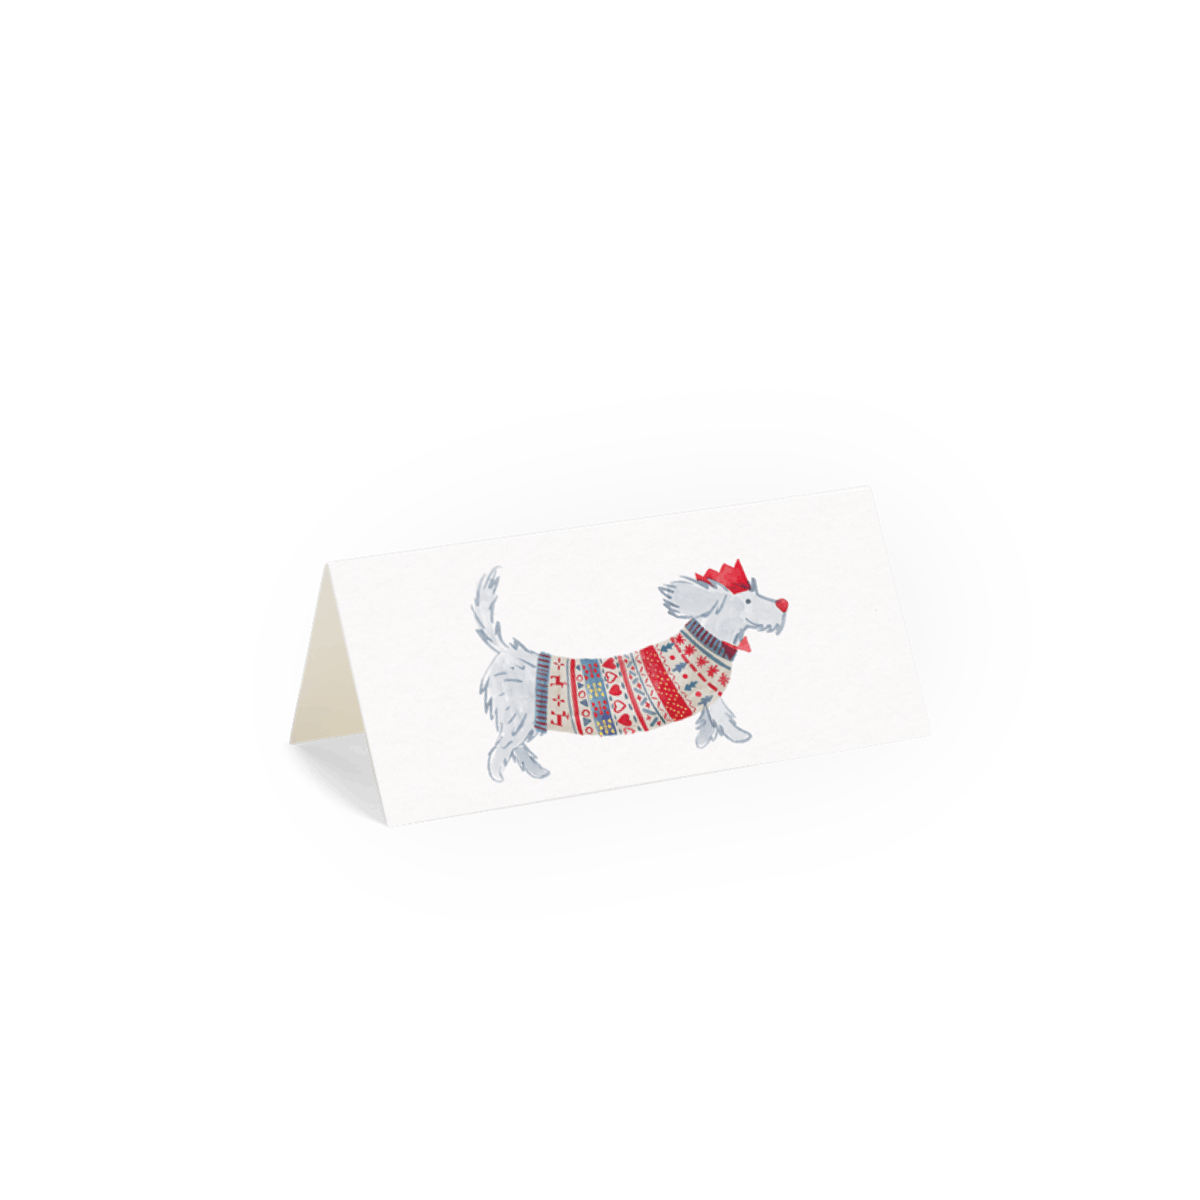 Https%3a%2f%2fwww.papier.com%2fproduct image%2f82175%2f15%2fchristmas dog 19843 arriere 1562071650.png?ixlib=rb 1.1